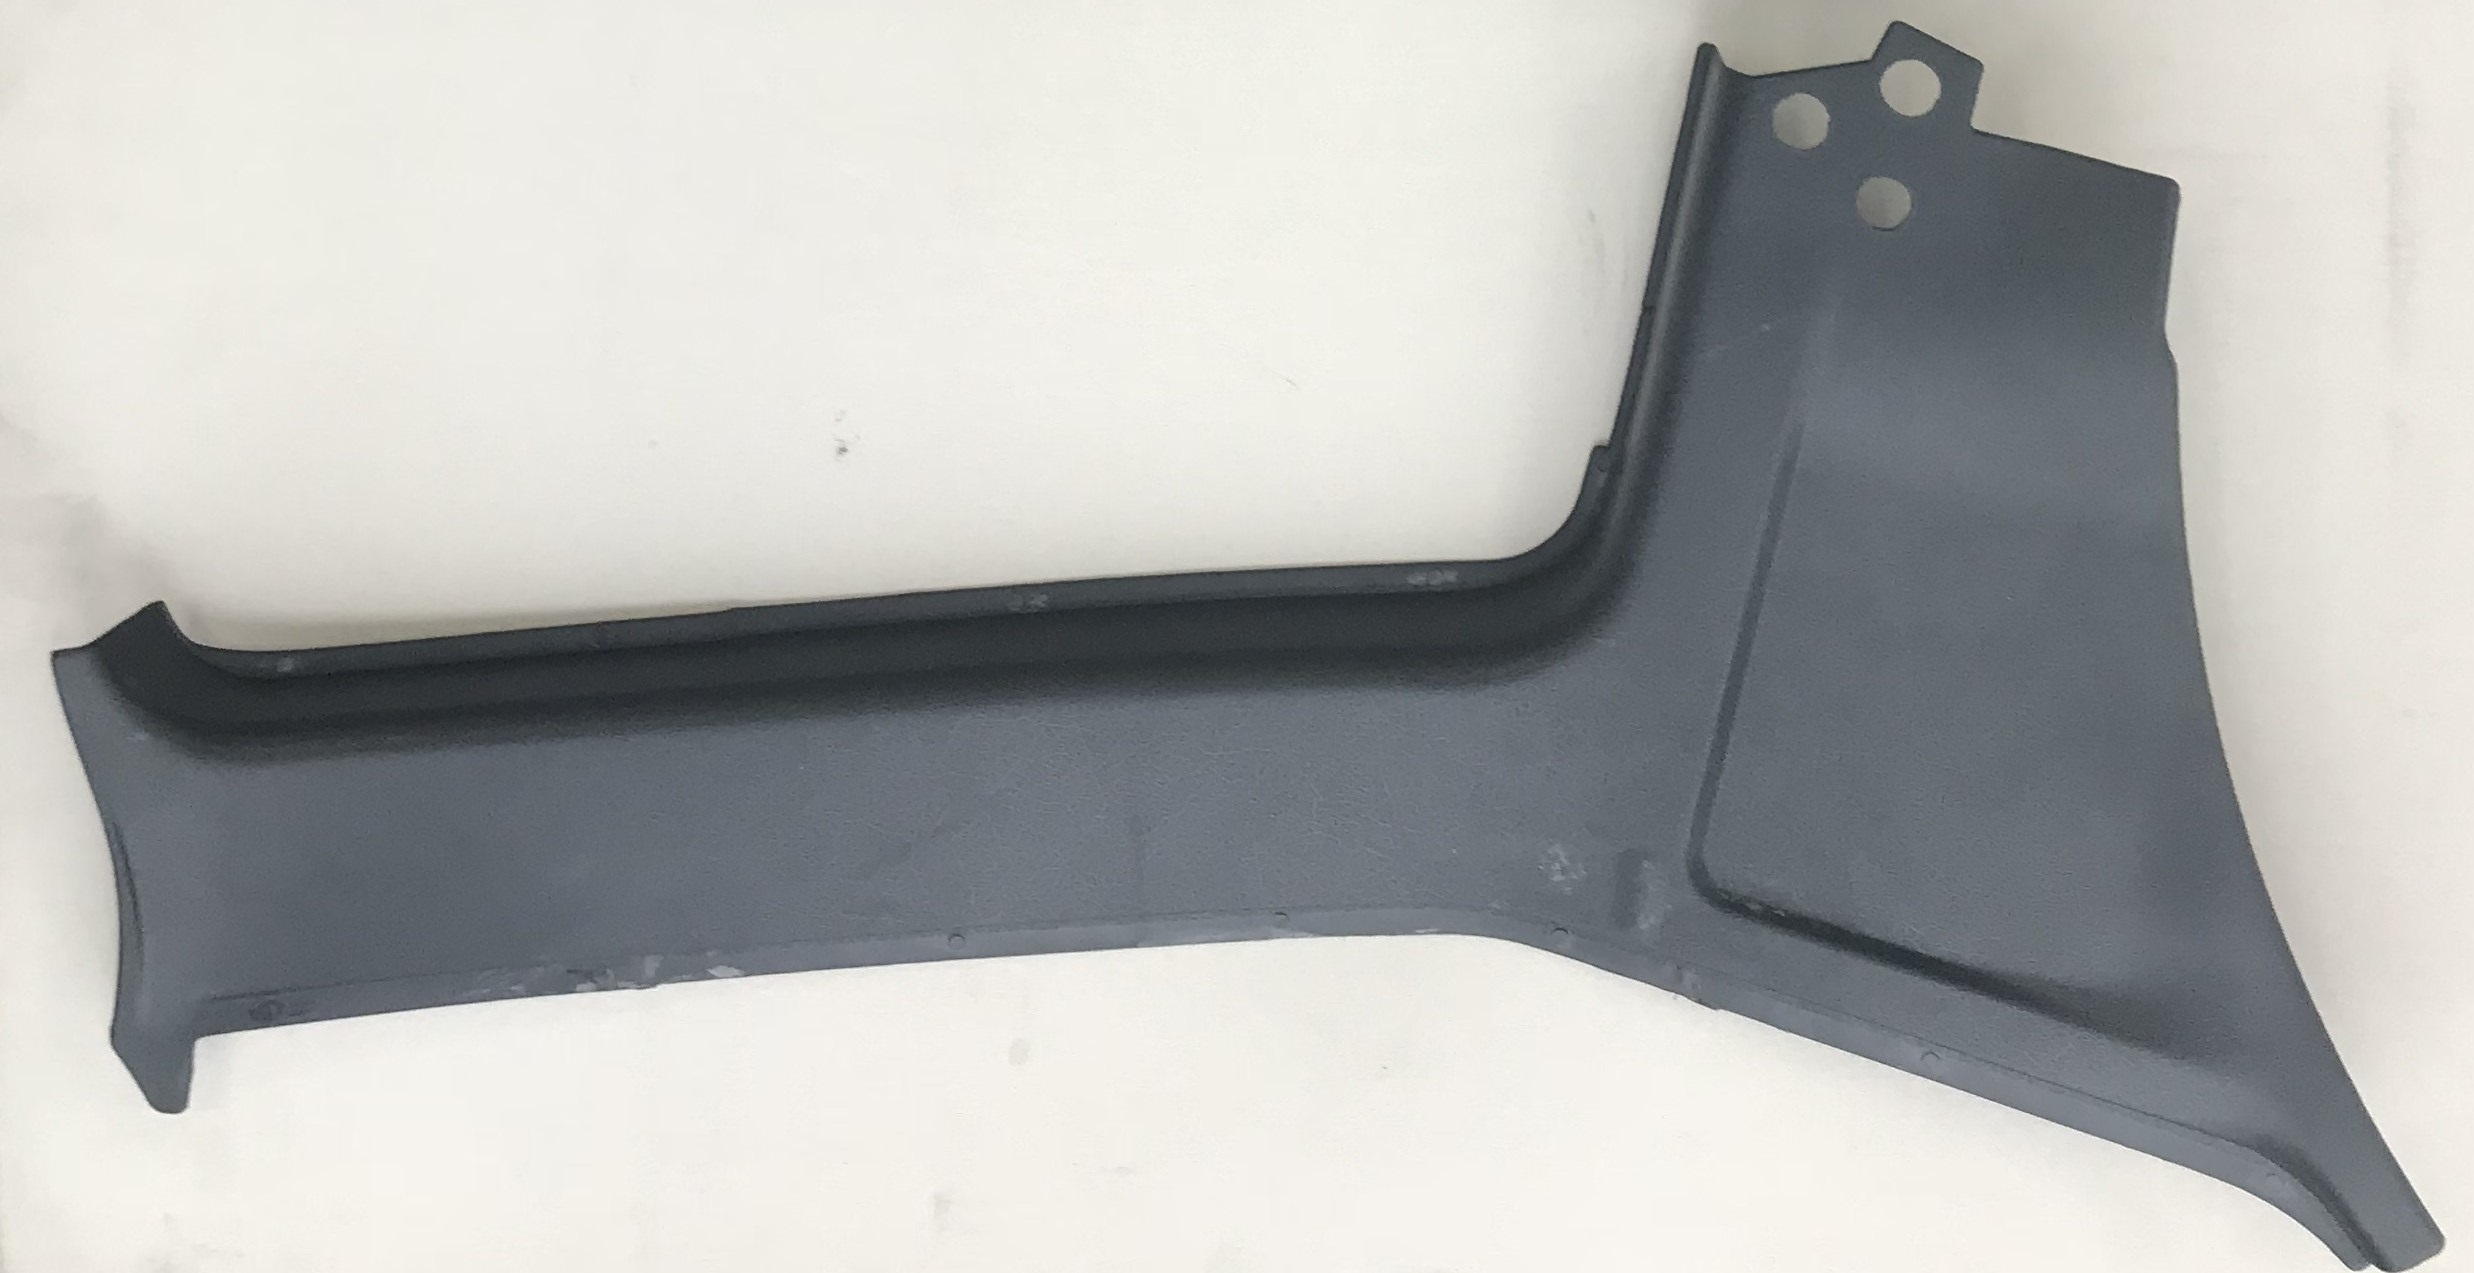 1364025 Volvo 240 Wagon Interior Door Post C Pillar Cover